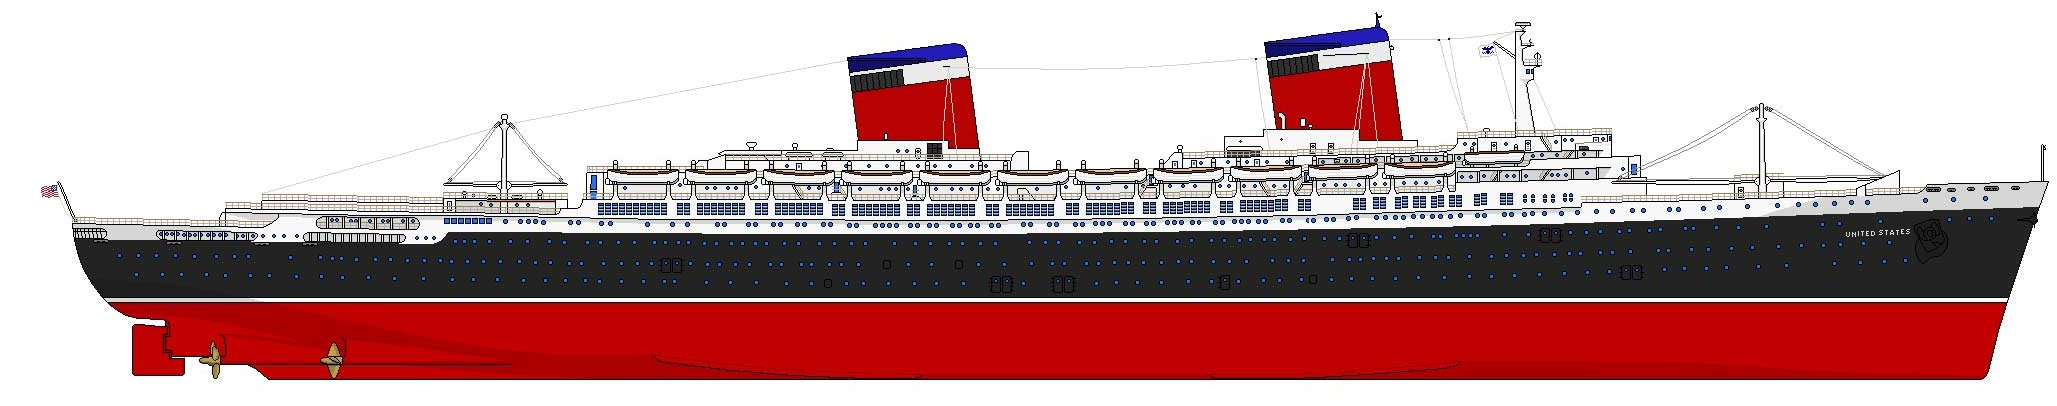 S.S. United States, United States Lines (1952)